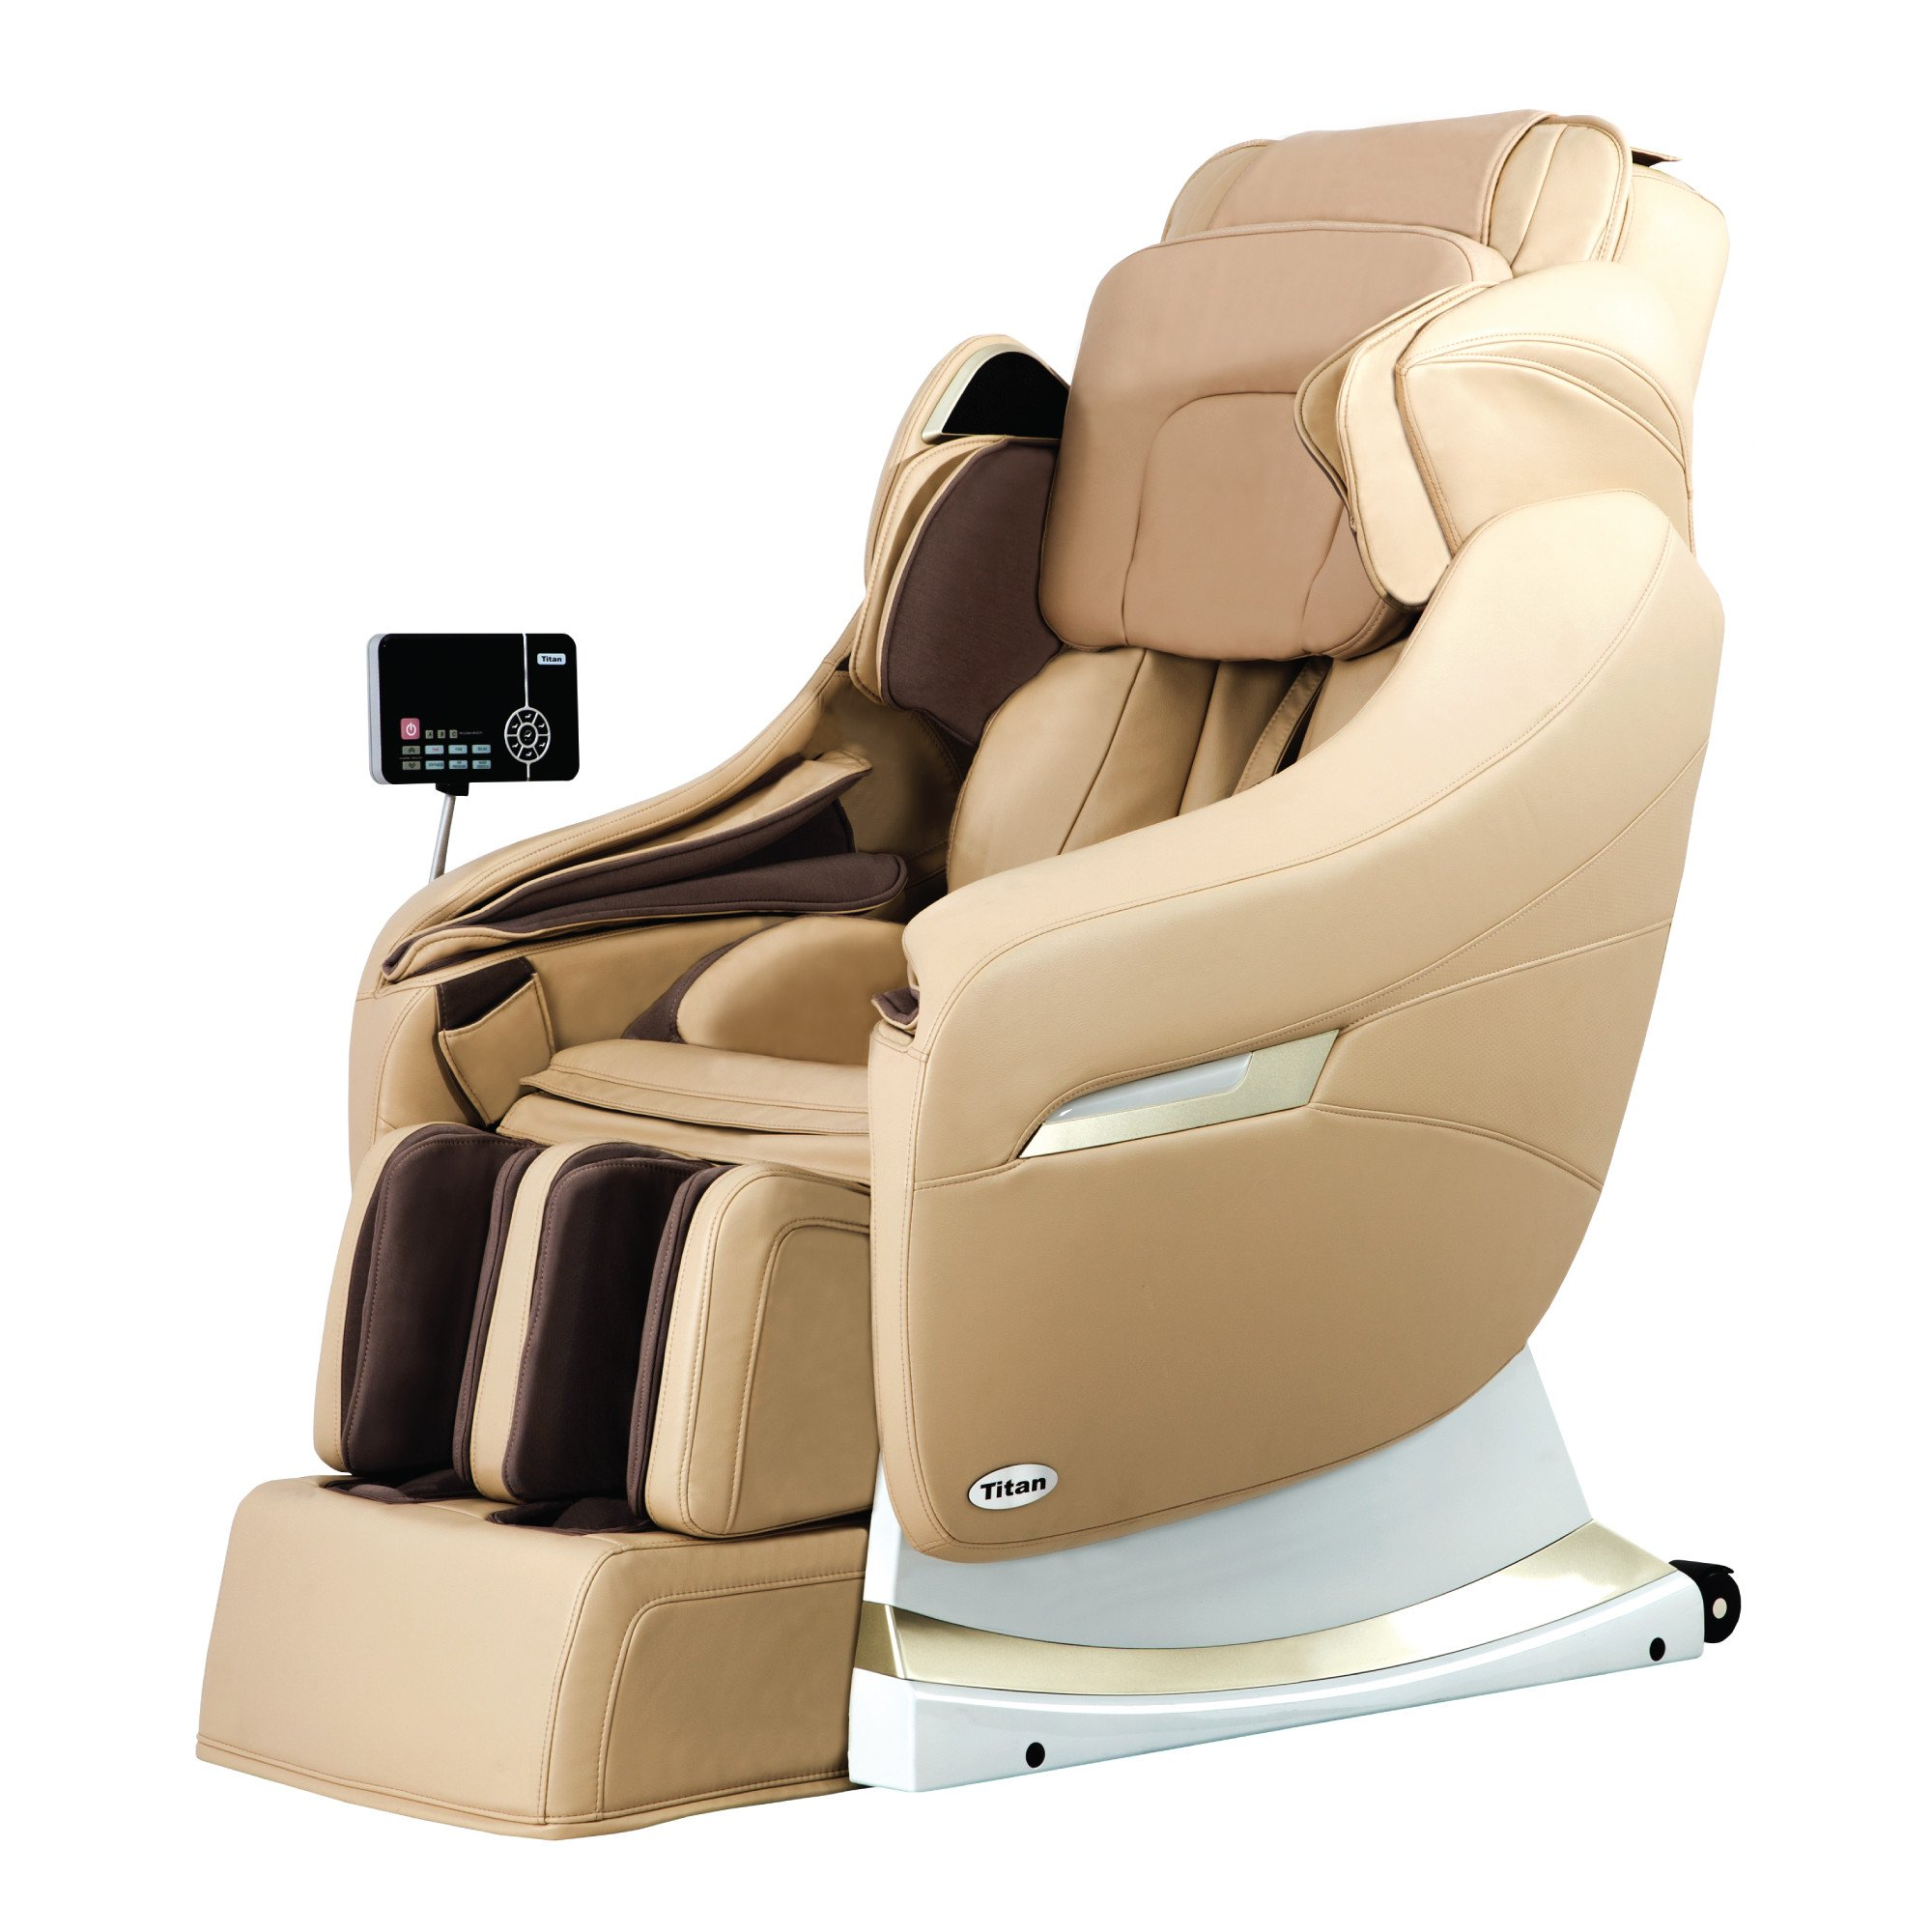 Titan Pro Executive Massage Chair - Cream - Front Angle View